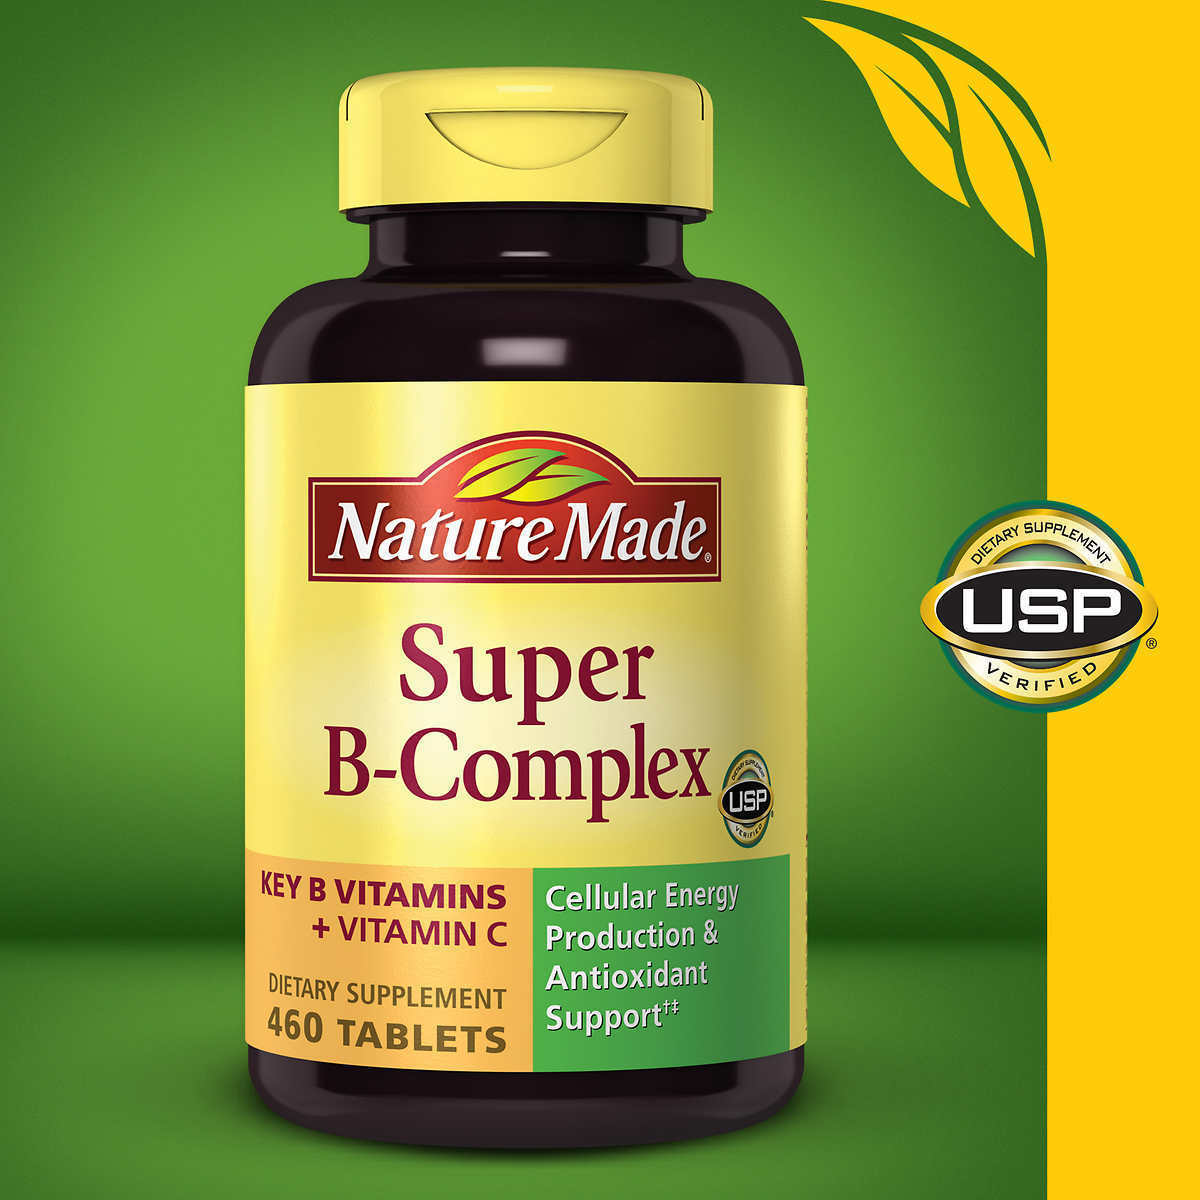 Nature Made Super B-Complex 460 Tablets with Vitamin C and